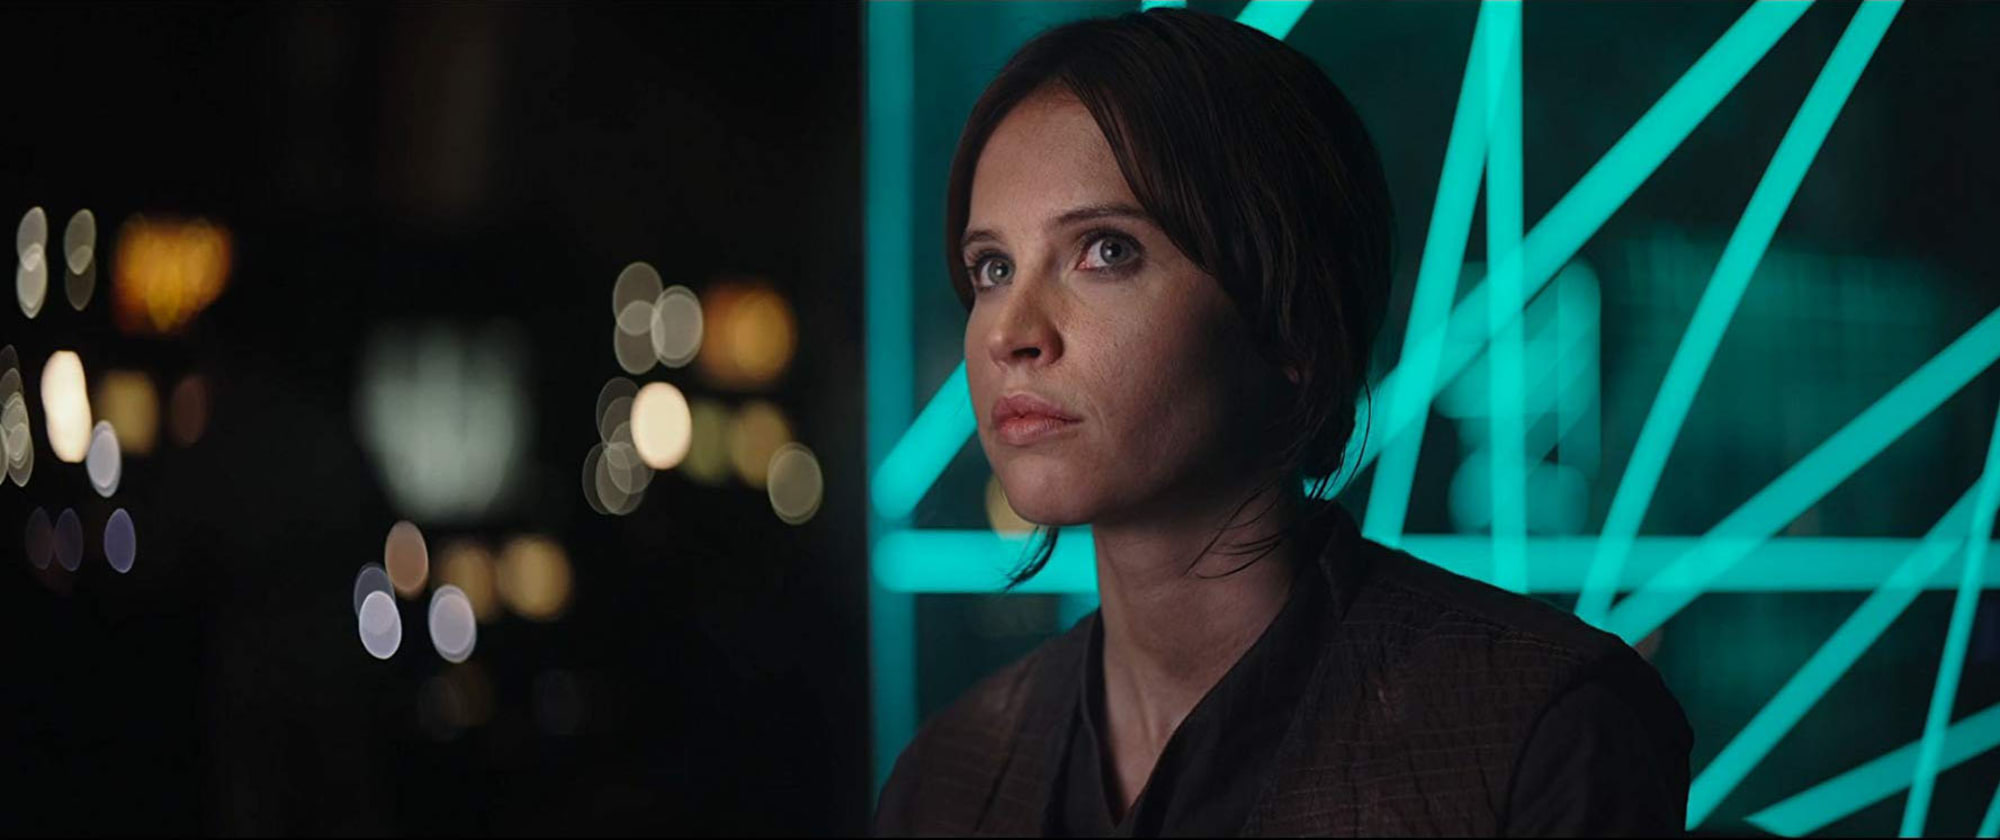 6 little-known facts about Felicity Jones in Star Wars